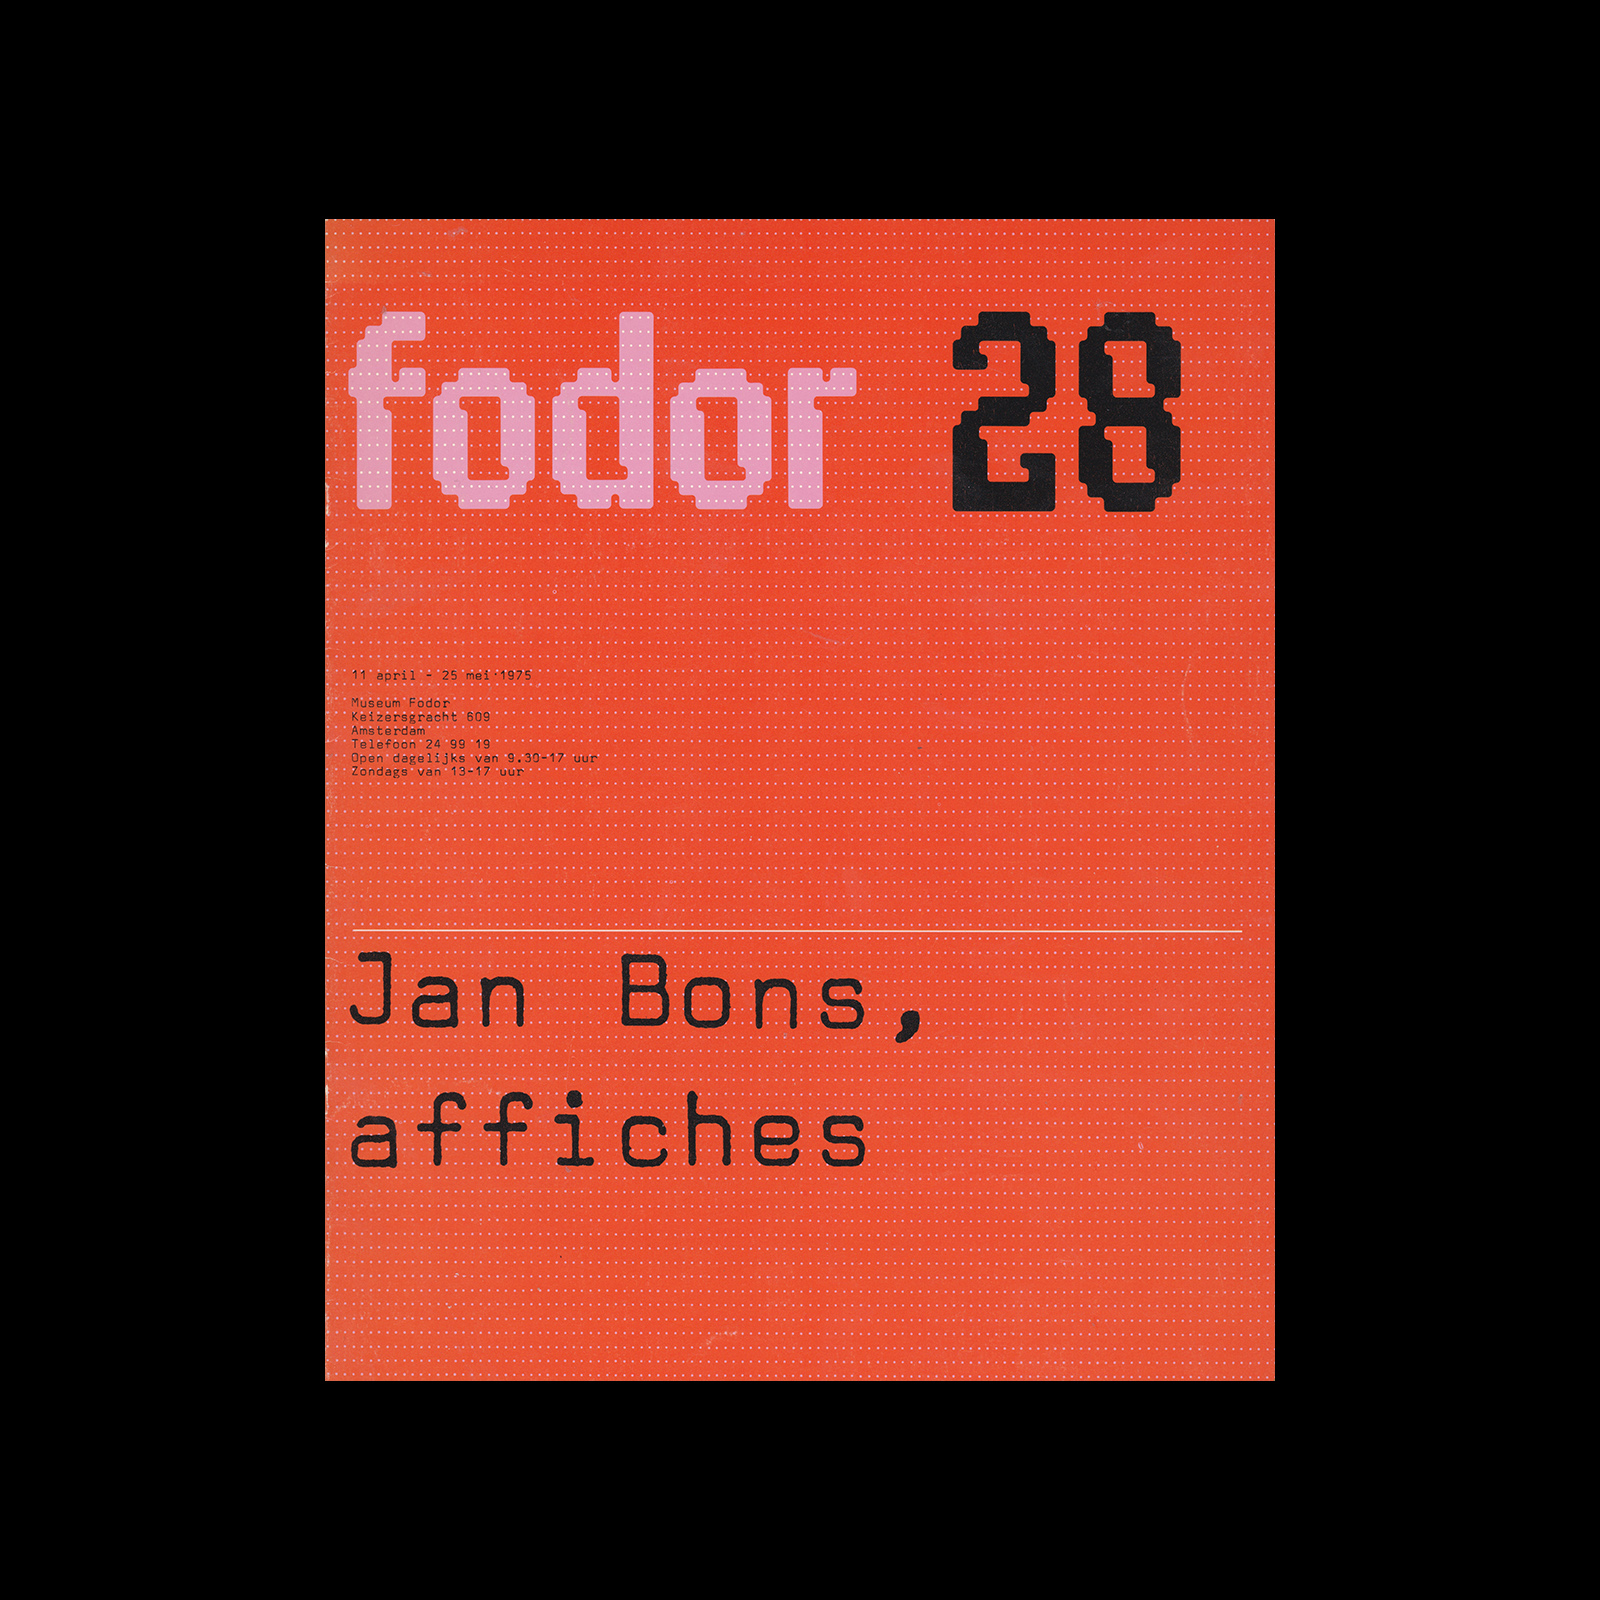 Fodor 28, 1975 - Jan Bons, Affiches. Designed by Wim Crouwel and Daphne Duijvelshoff (Total Design)